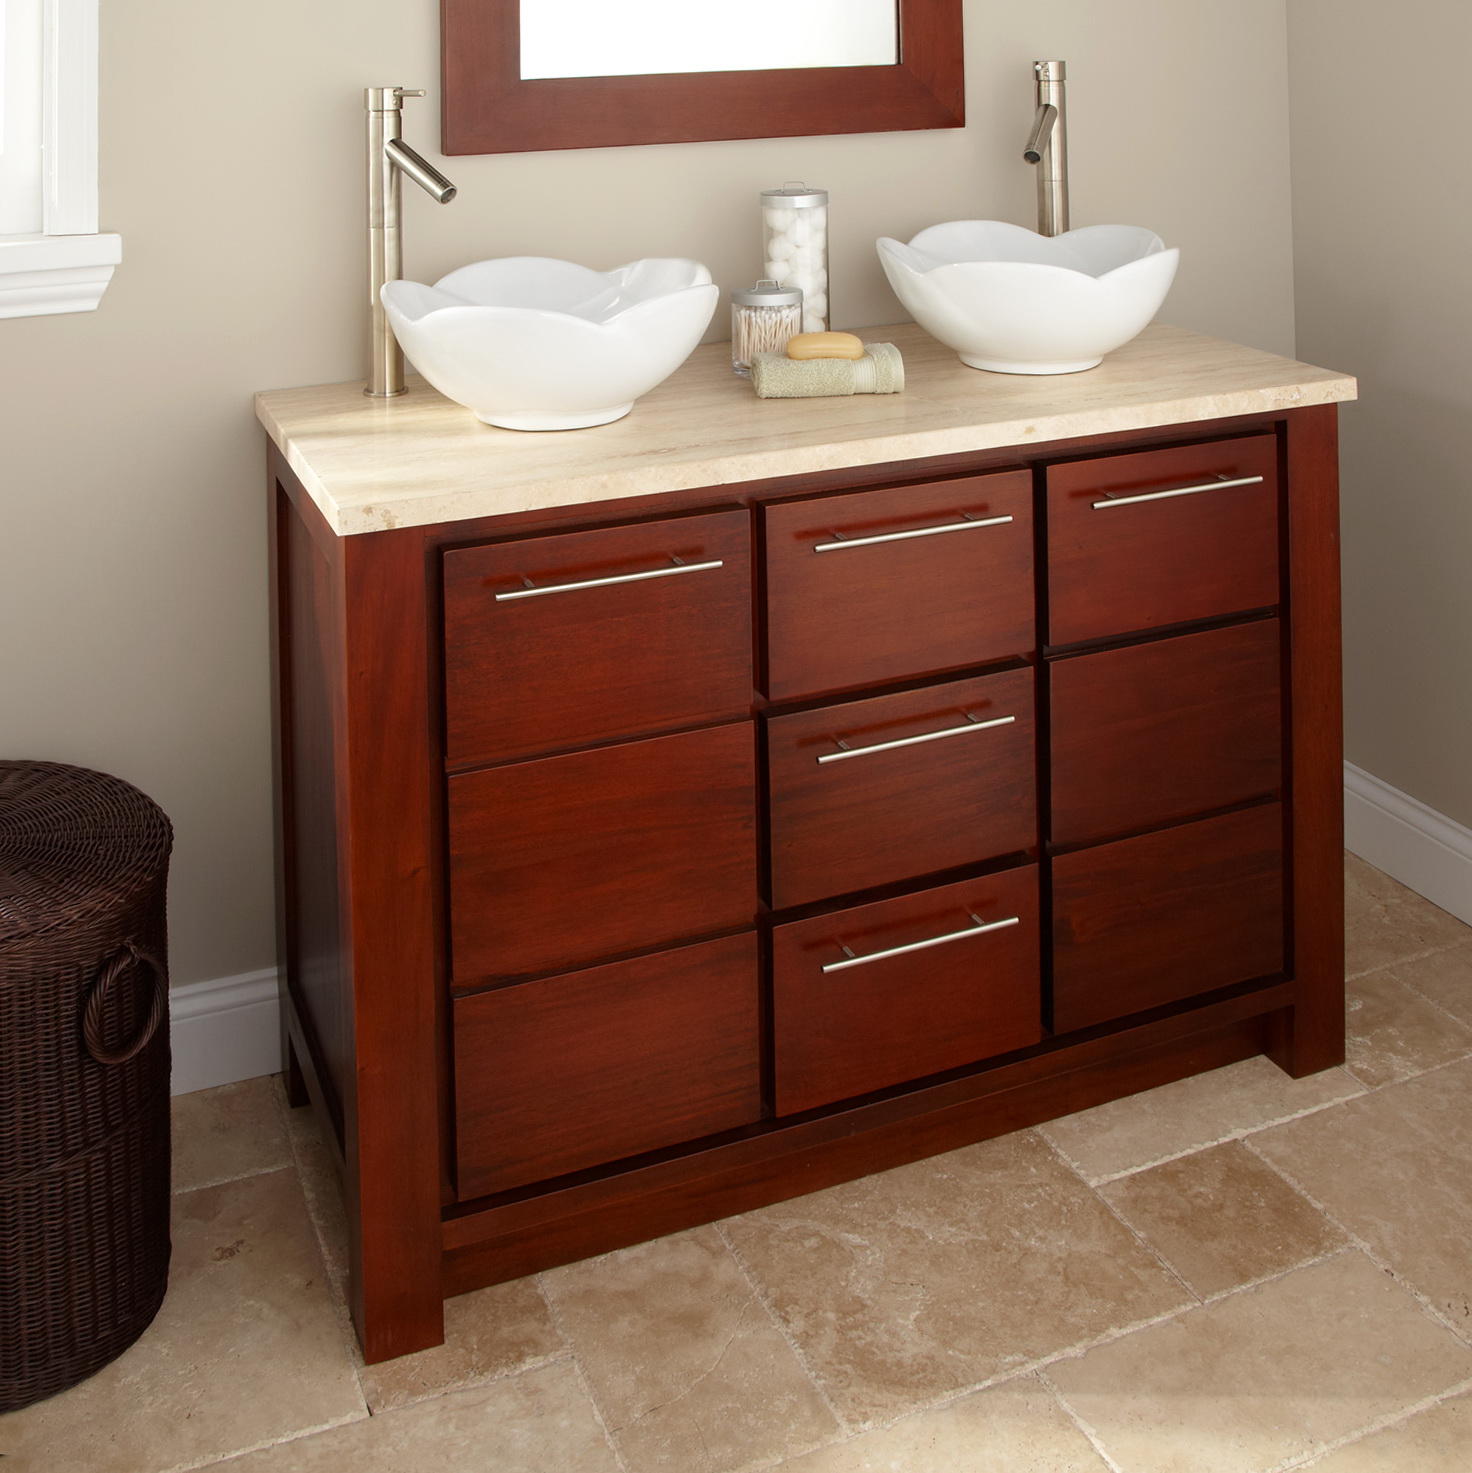 Unique Rustic Bathroom Vanities